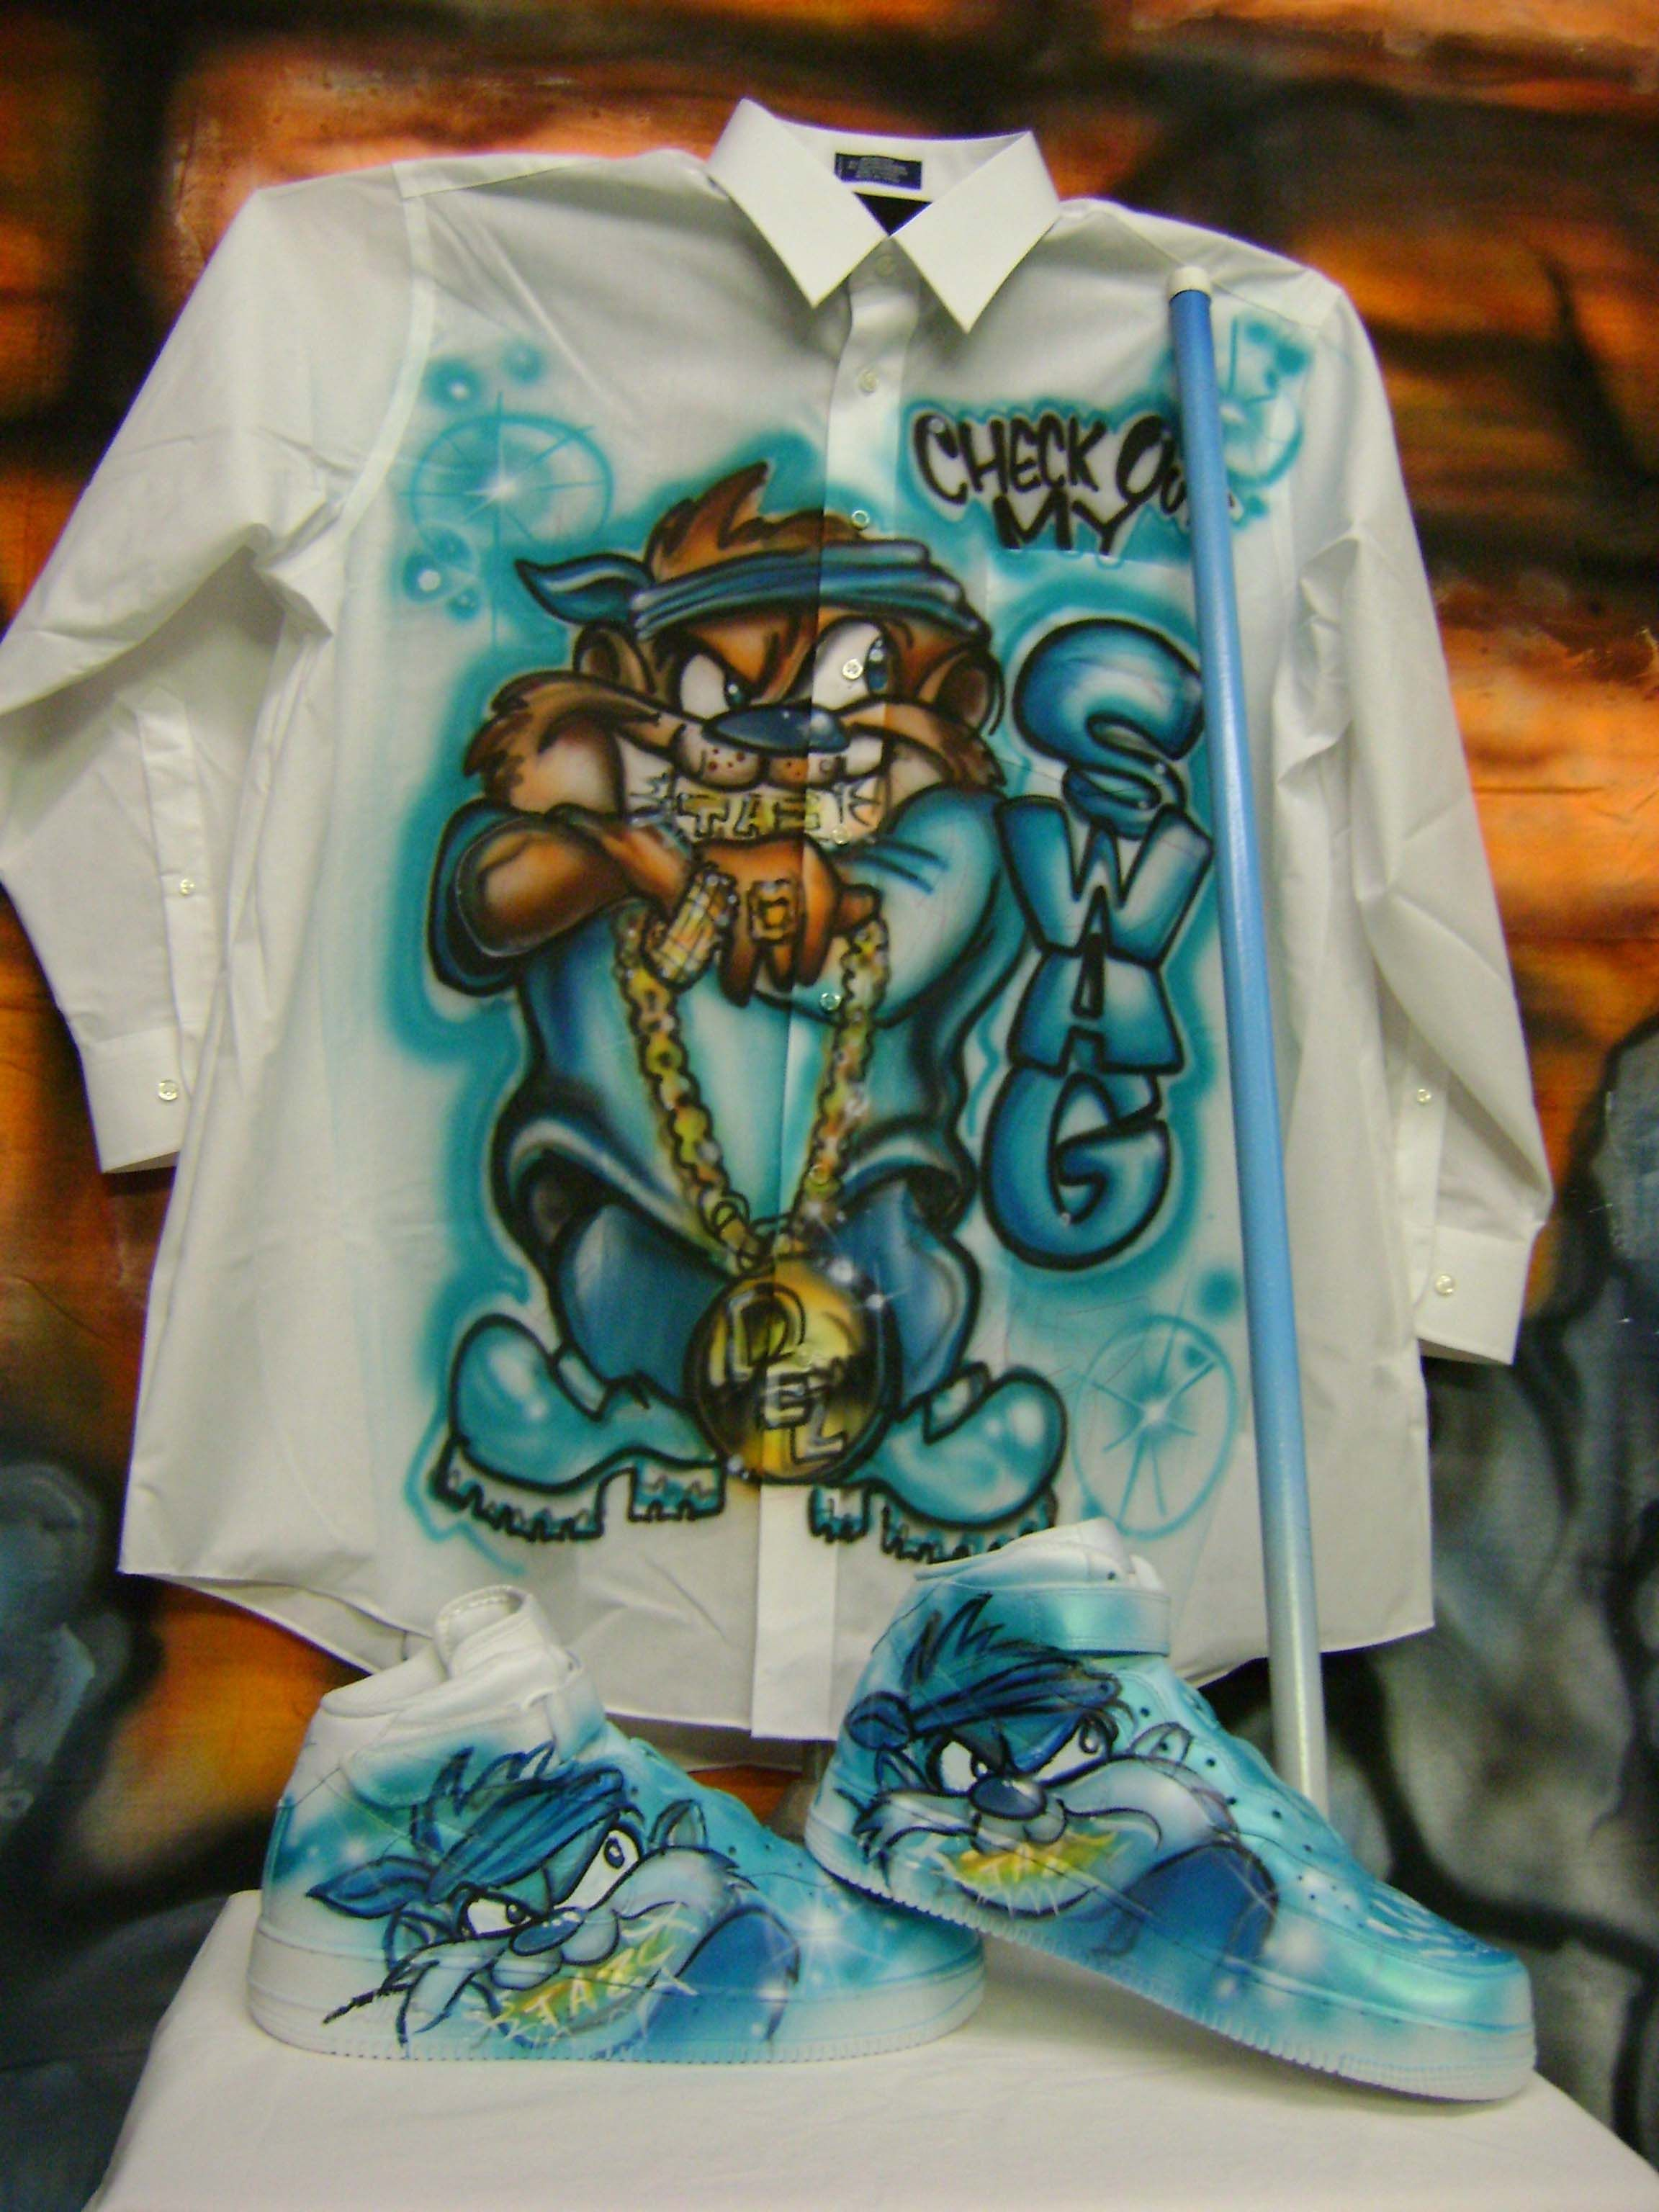 Shirt design uber - Airbrushed To Uber Distinction Shirts Jackets Fabric When You Want To